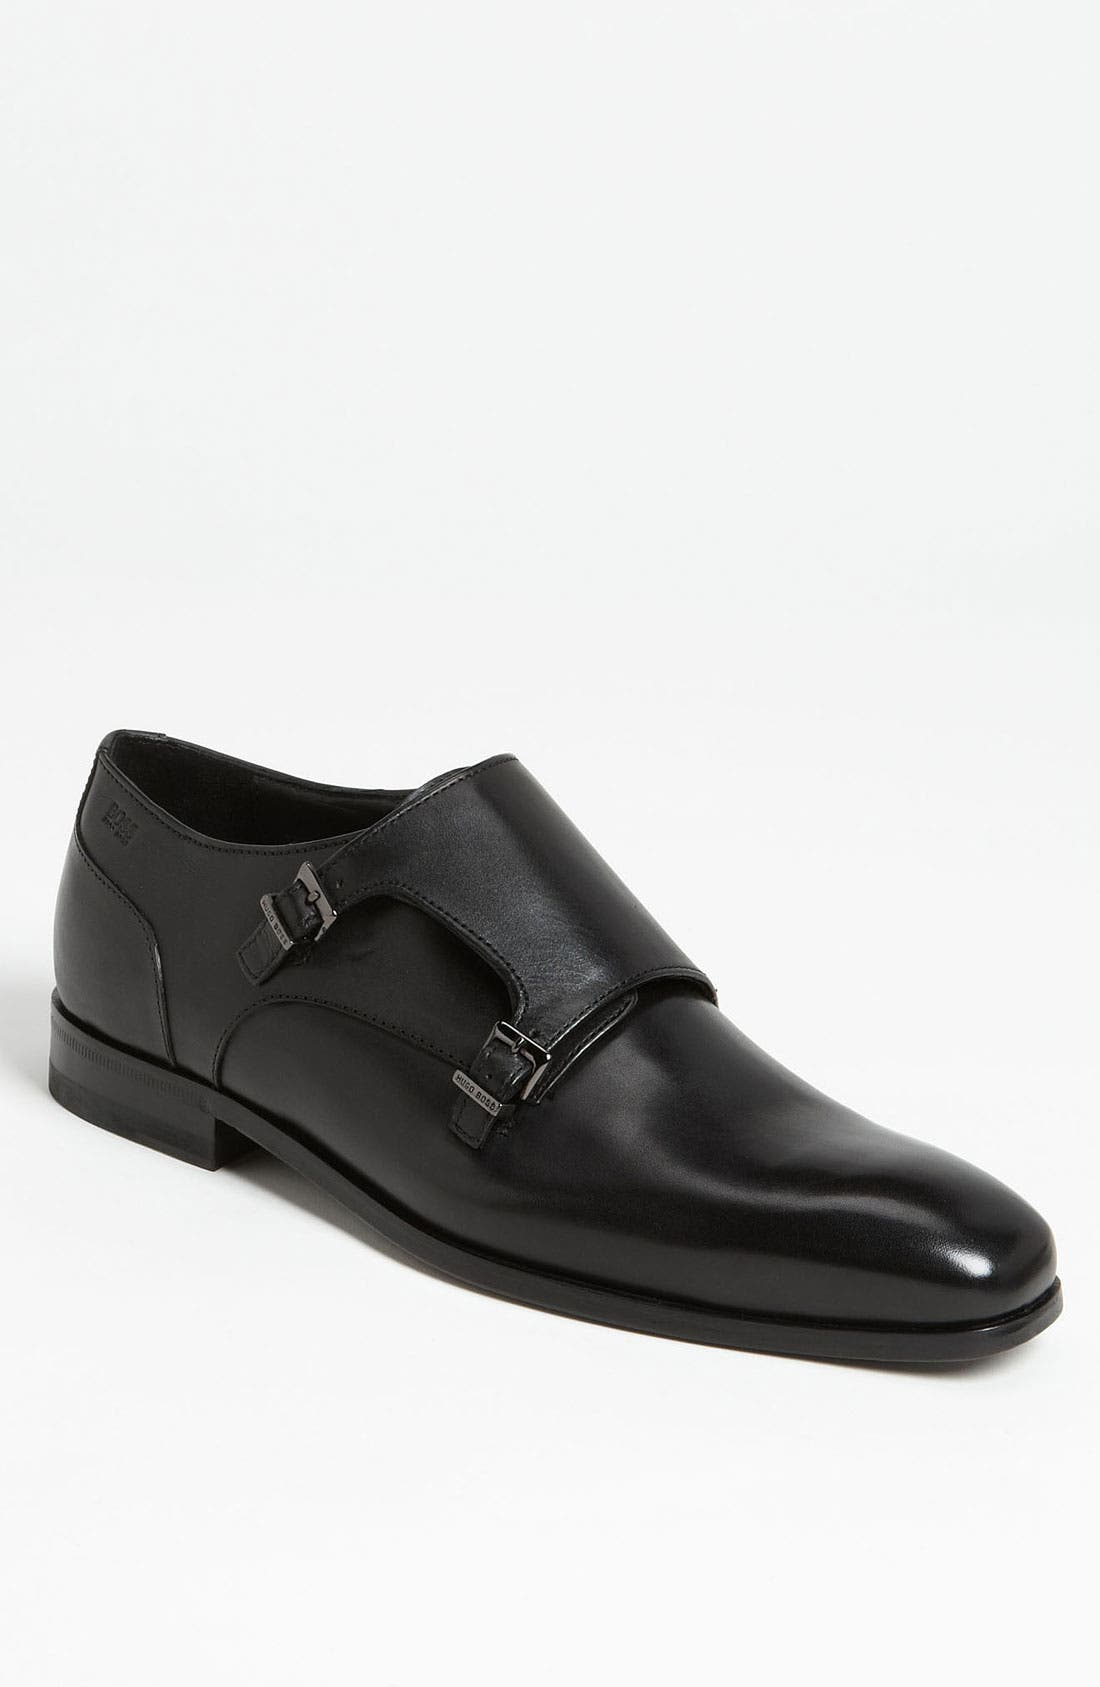 Main Image - BOSS Black 'Copers' Double Monk Strap Slip-On